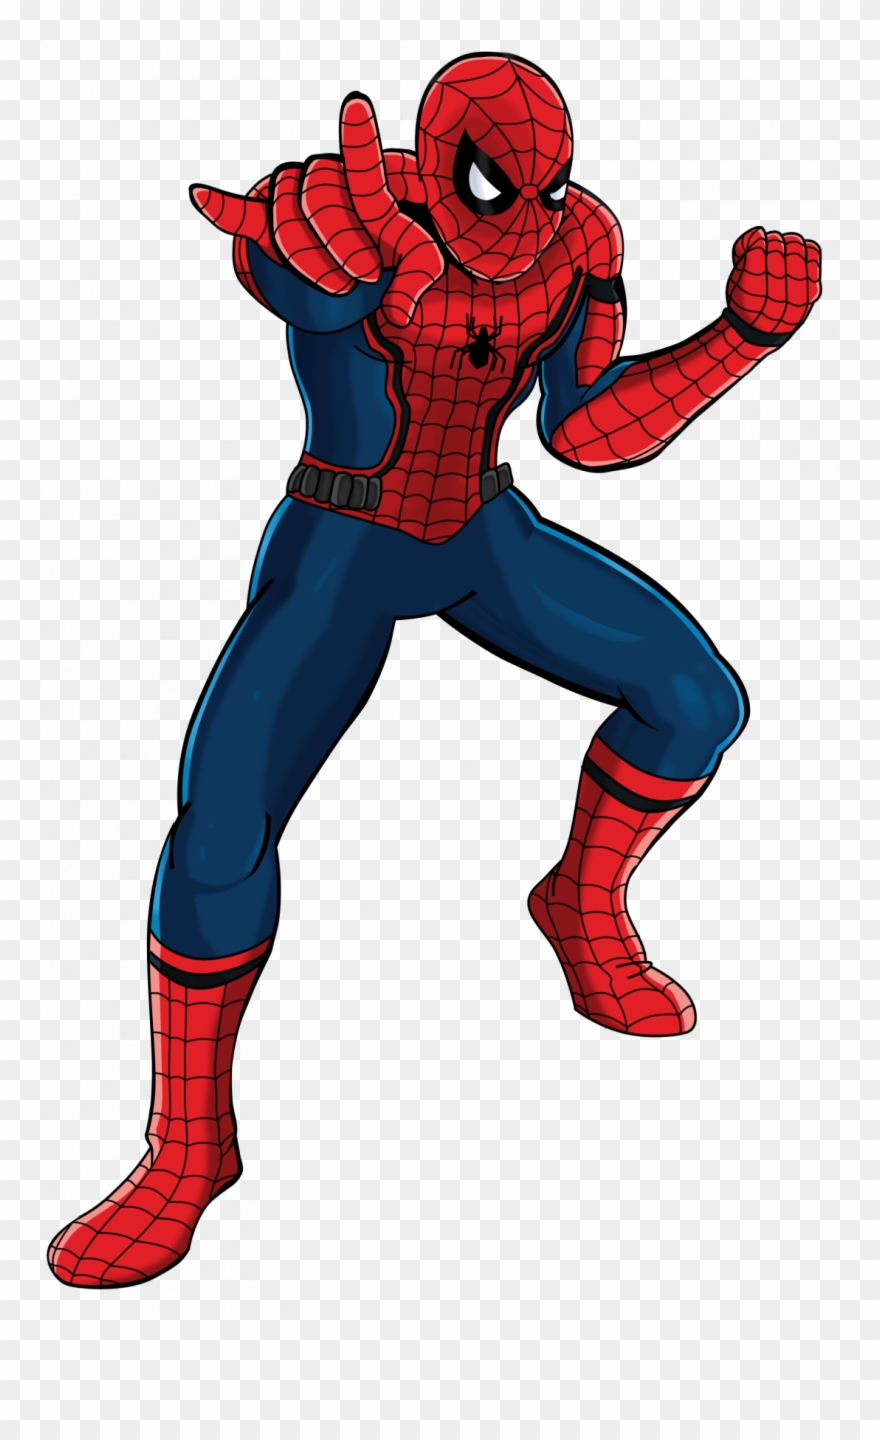 How To Draw A Spiderman Step By Easy Realistic.